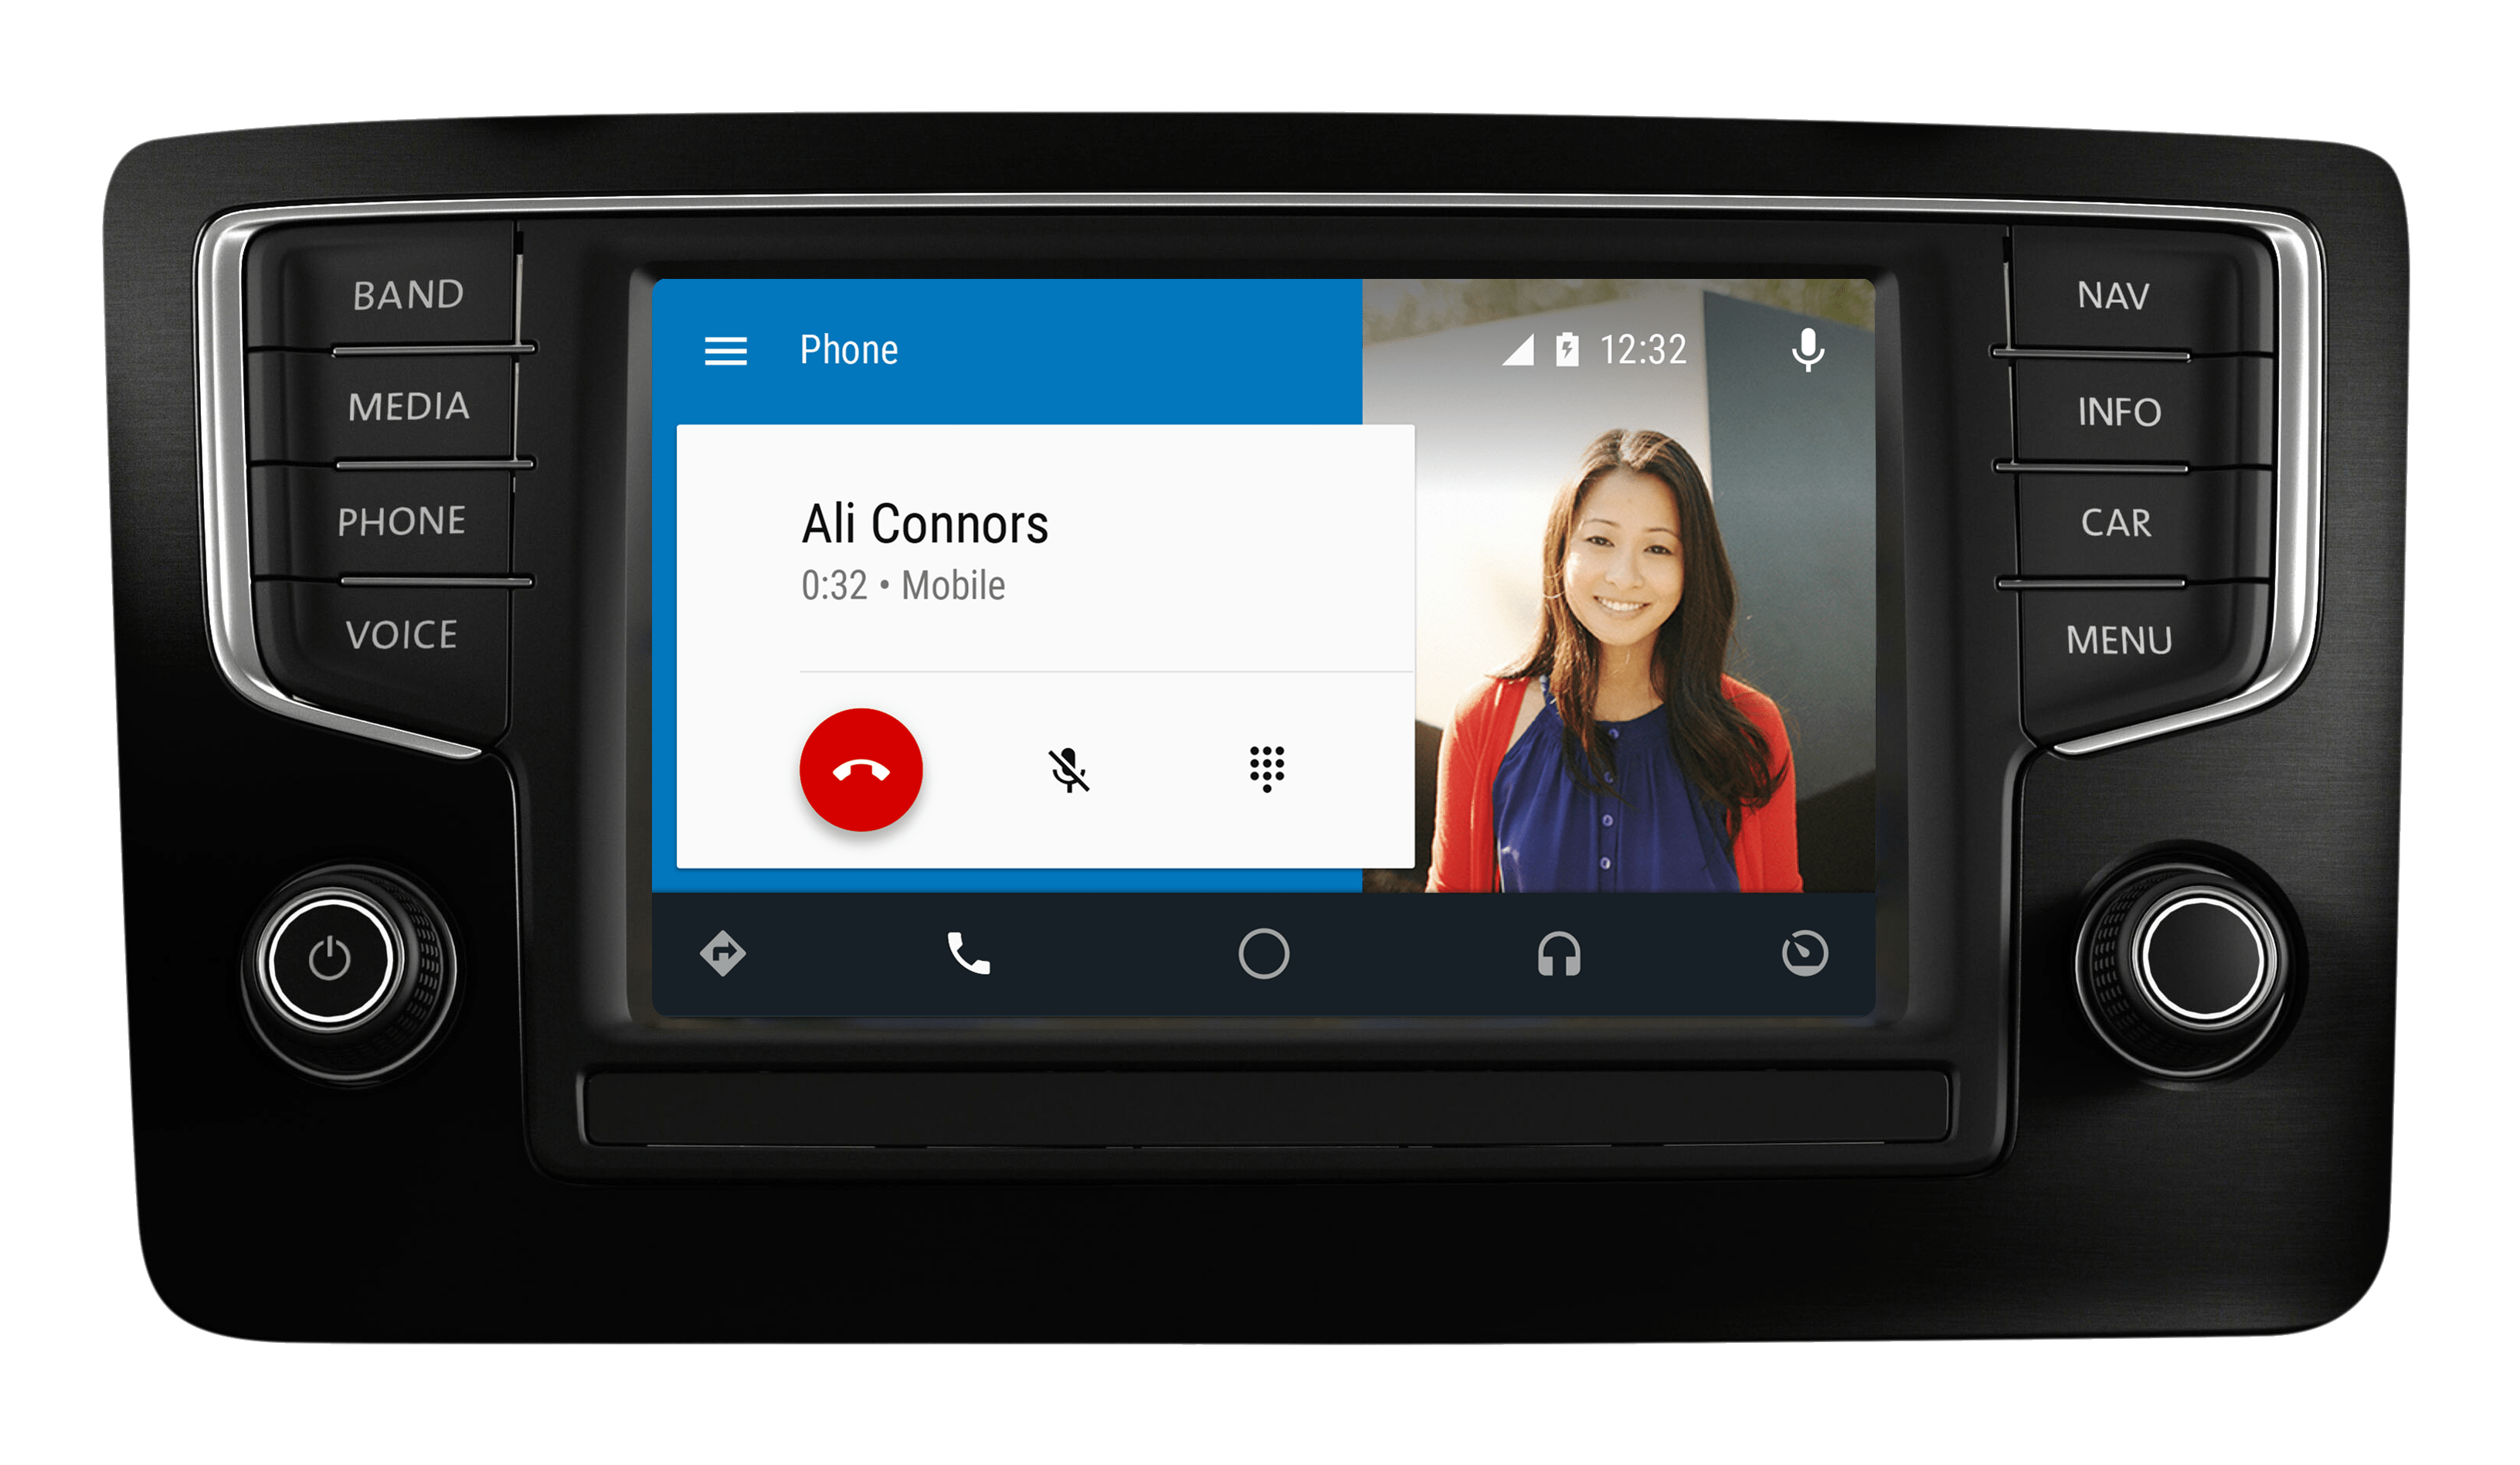 Android Auto - Dialer